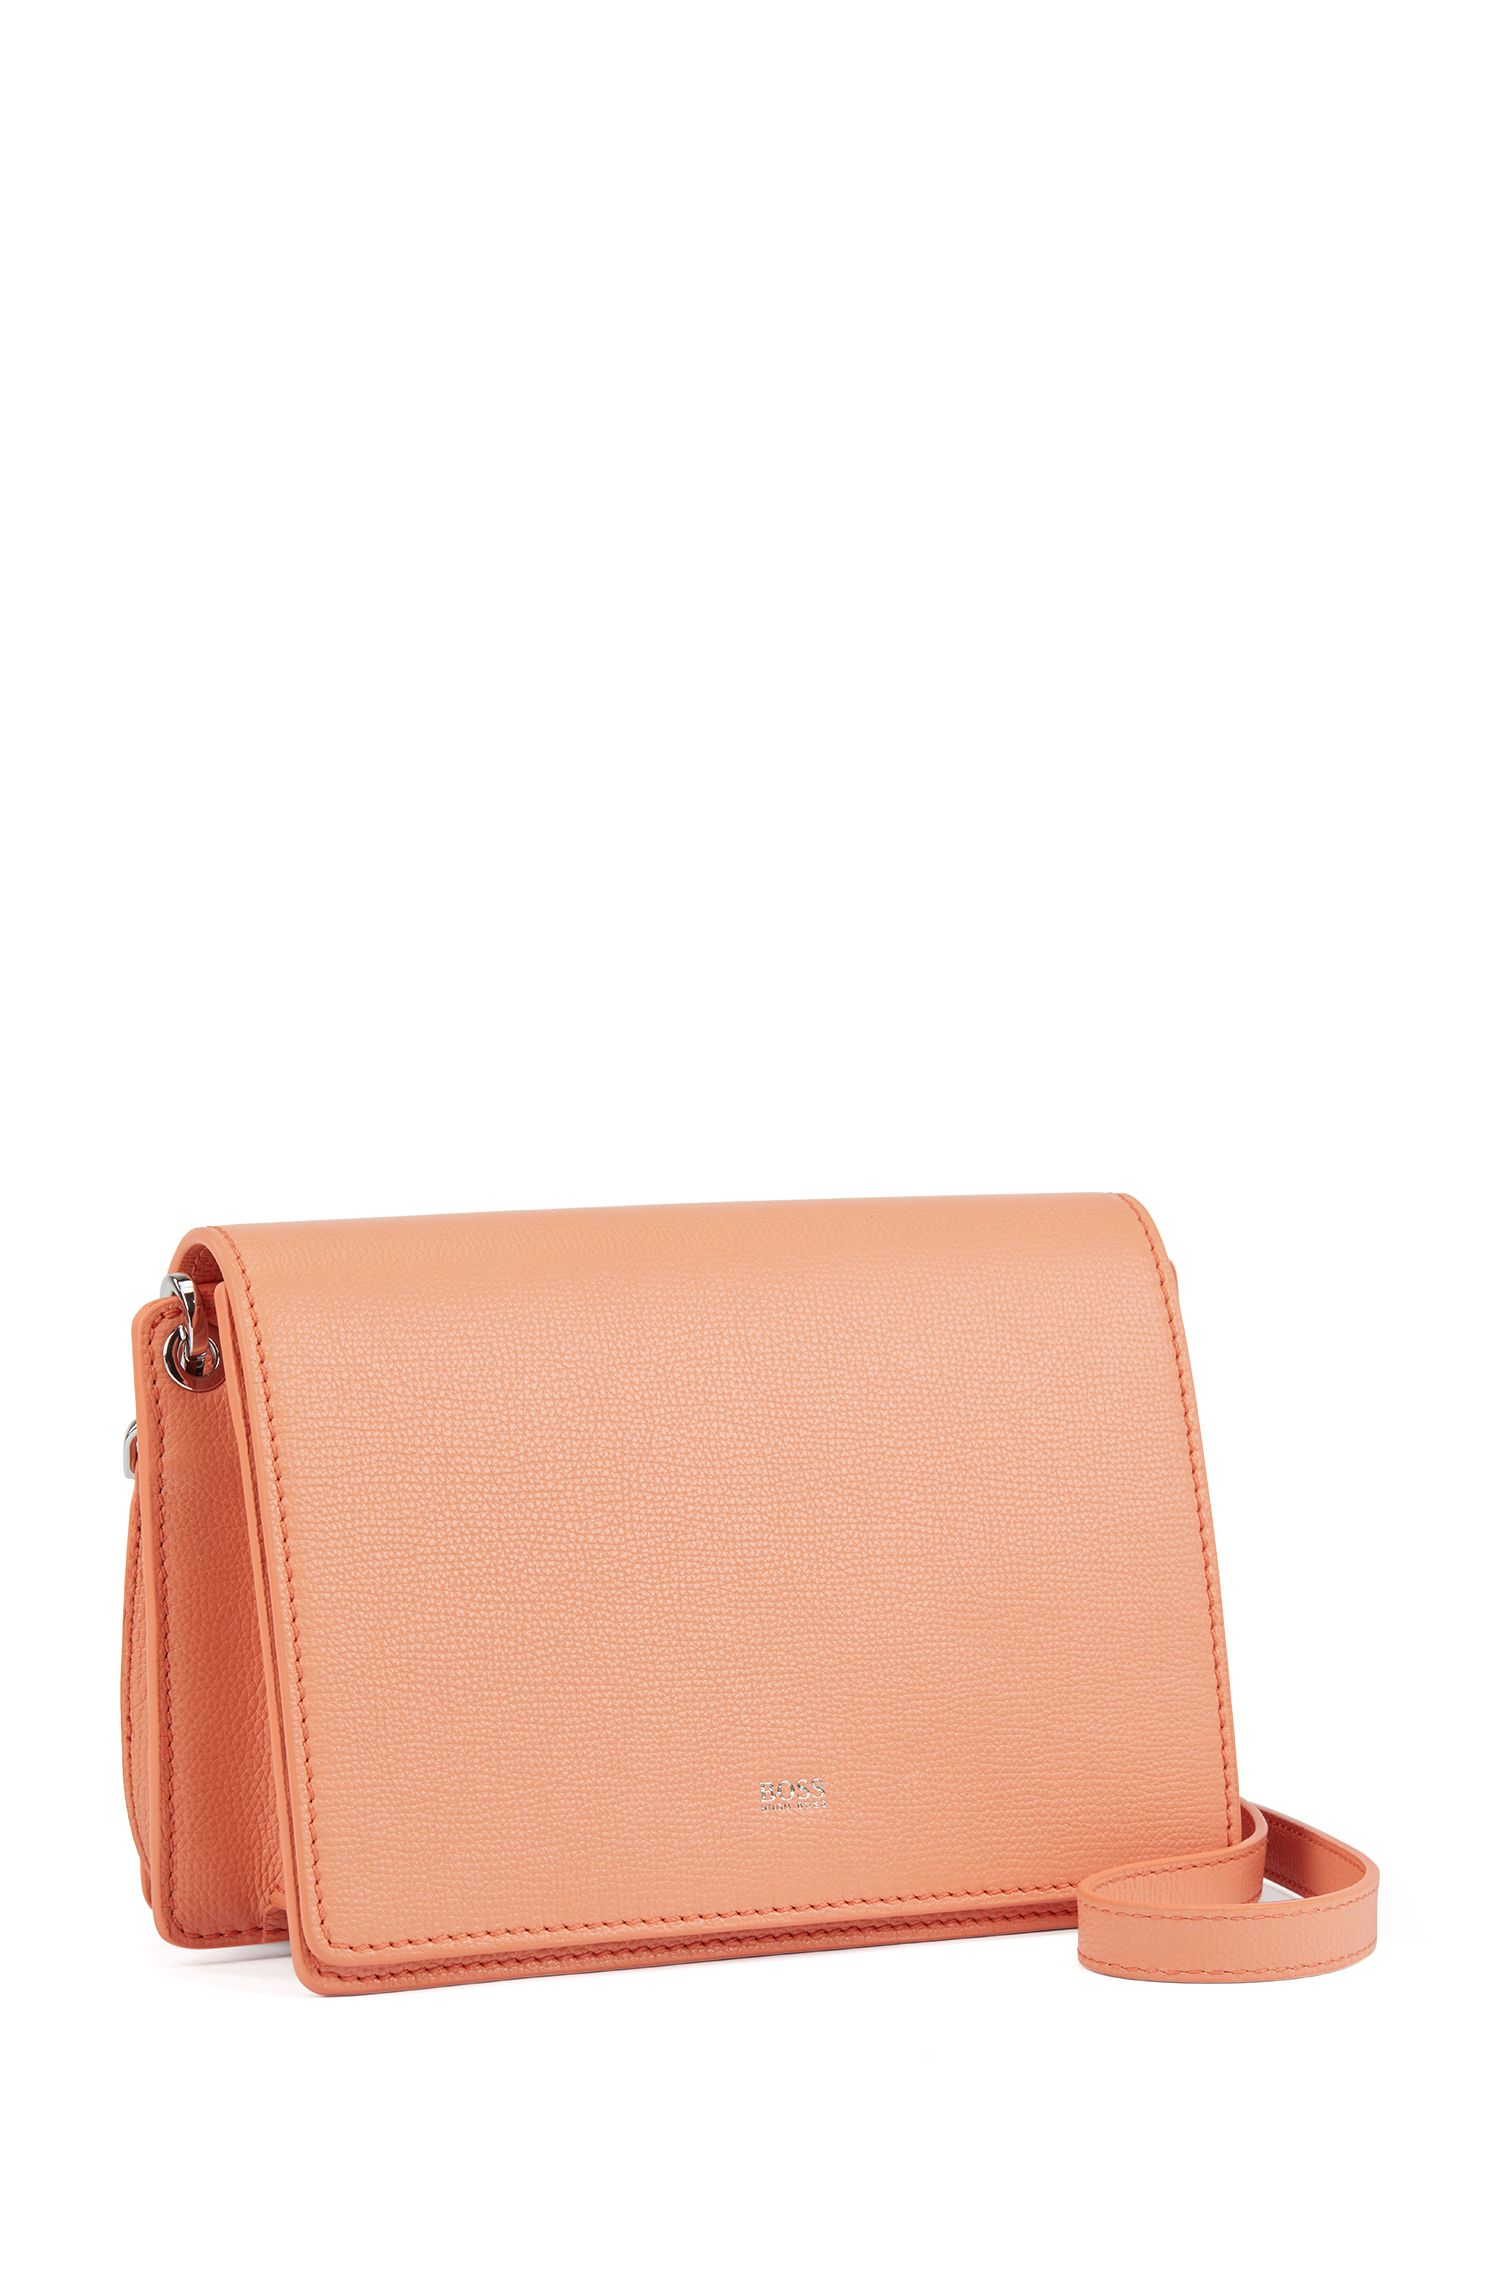 Crossbody bag in grainy Italian leather, Orange